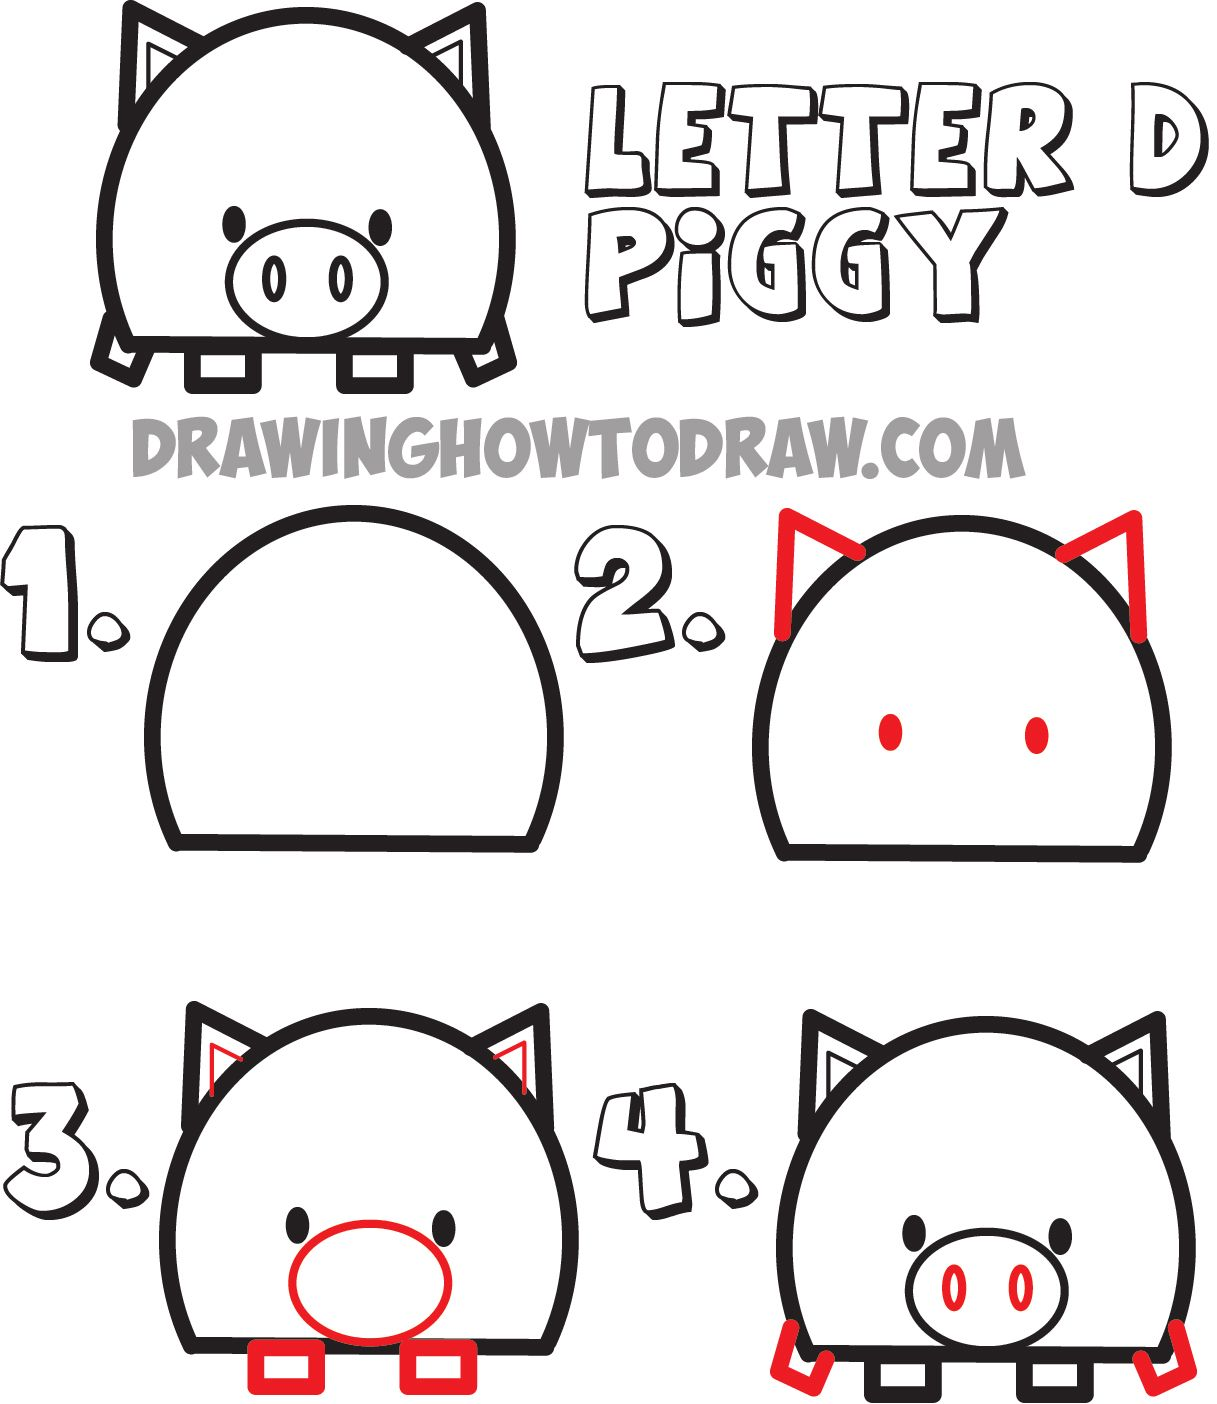 Huge Guide To Drawing Cartoon Animals From The Uppercase Letter D Drawing Tutorial For Kids How To Draw Step By Step Drawing Tutorials Cartoon Drawings Drawing Tutorial Drawing Tutorials For Kids